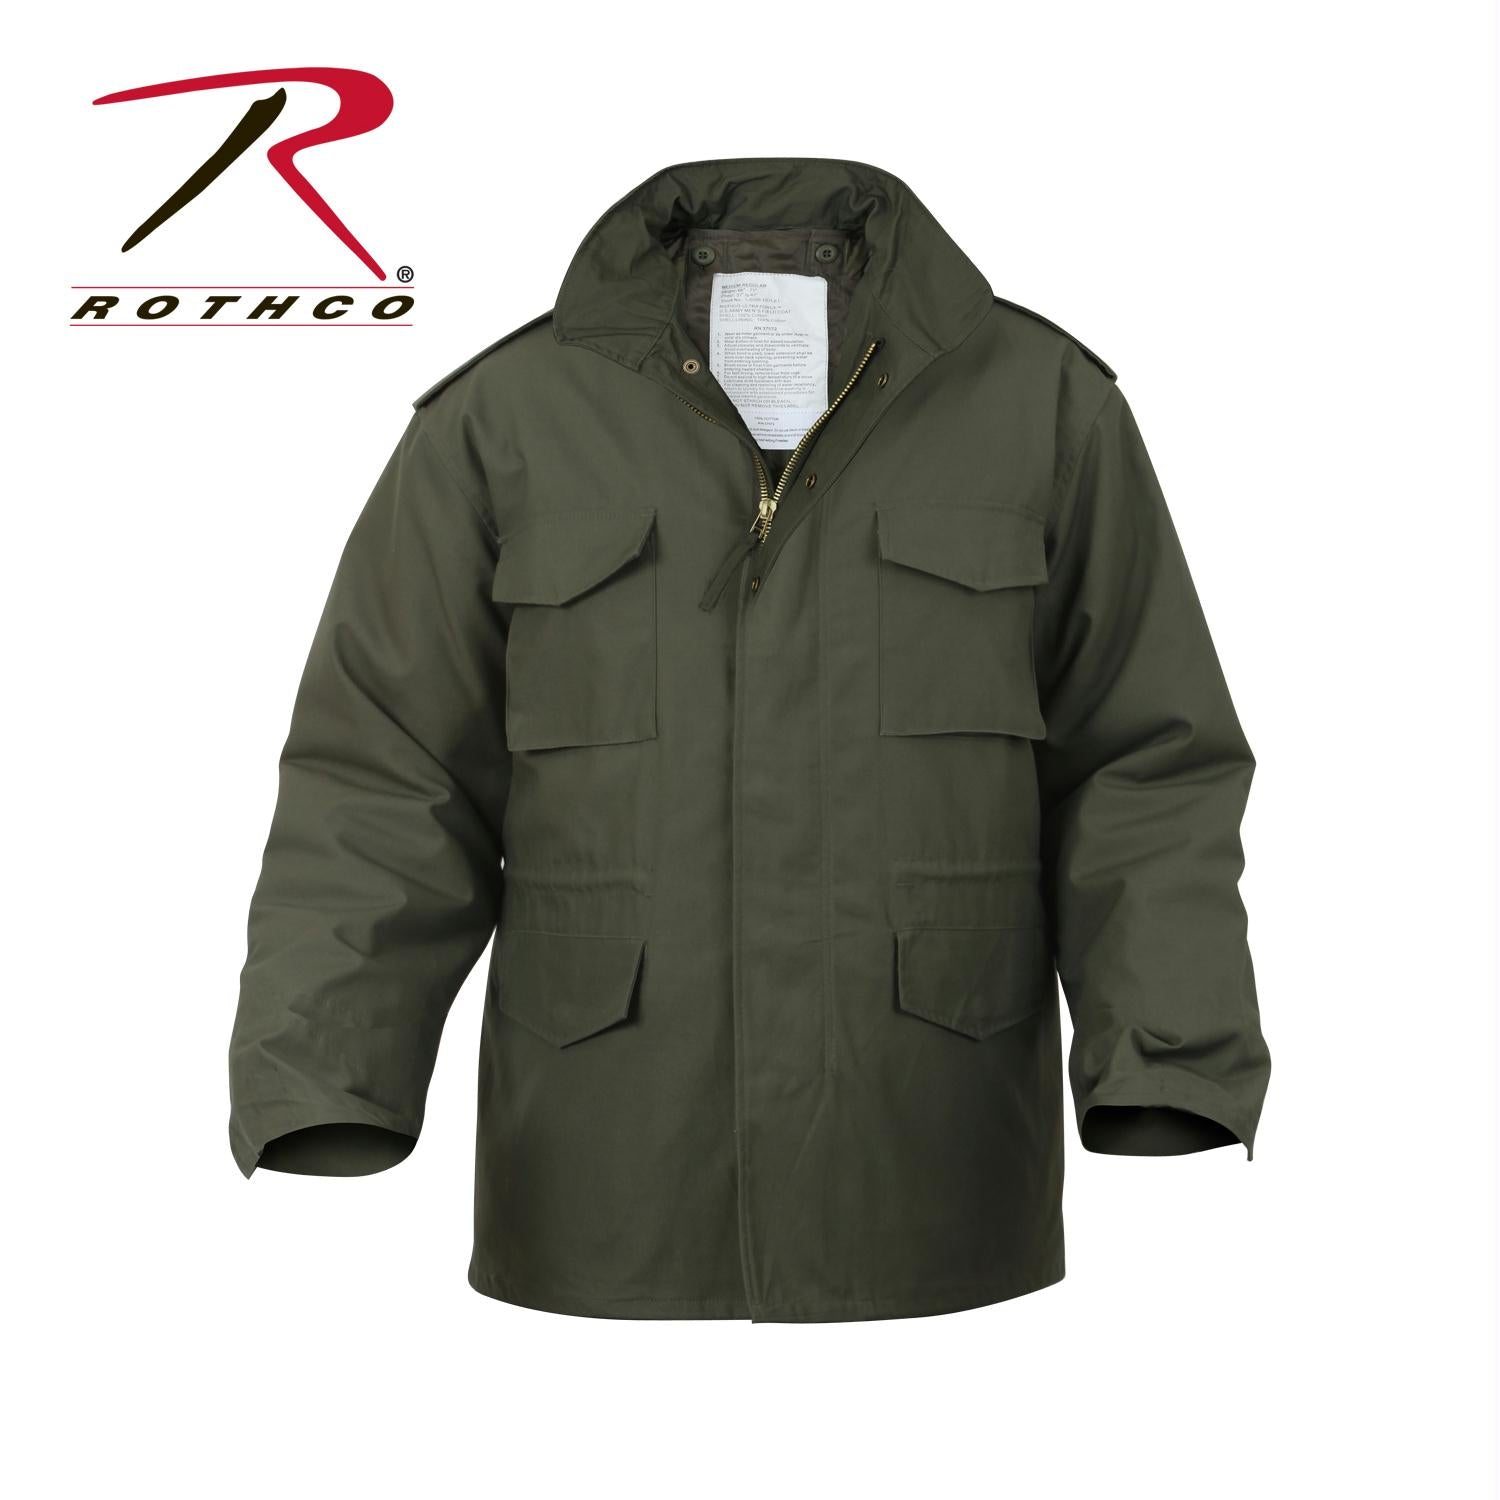 Rothco M-65 Field Jacket - Olive Drab / XS